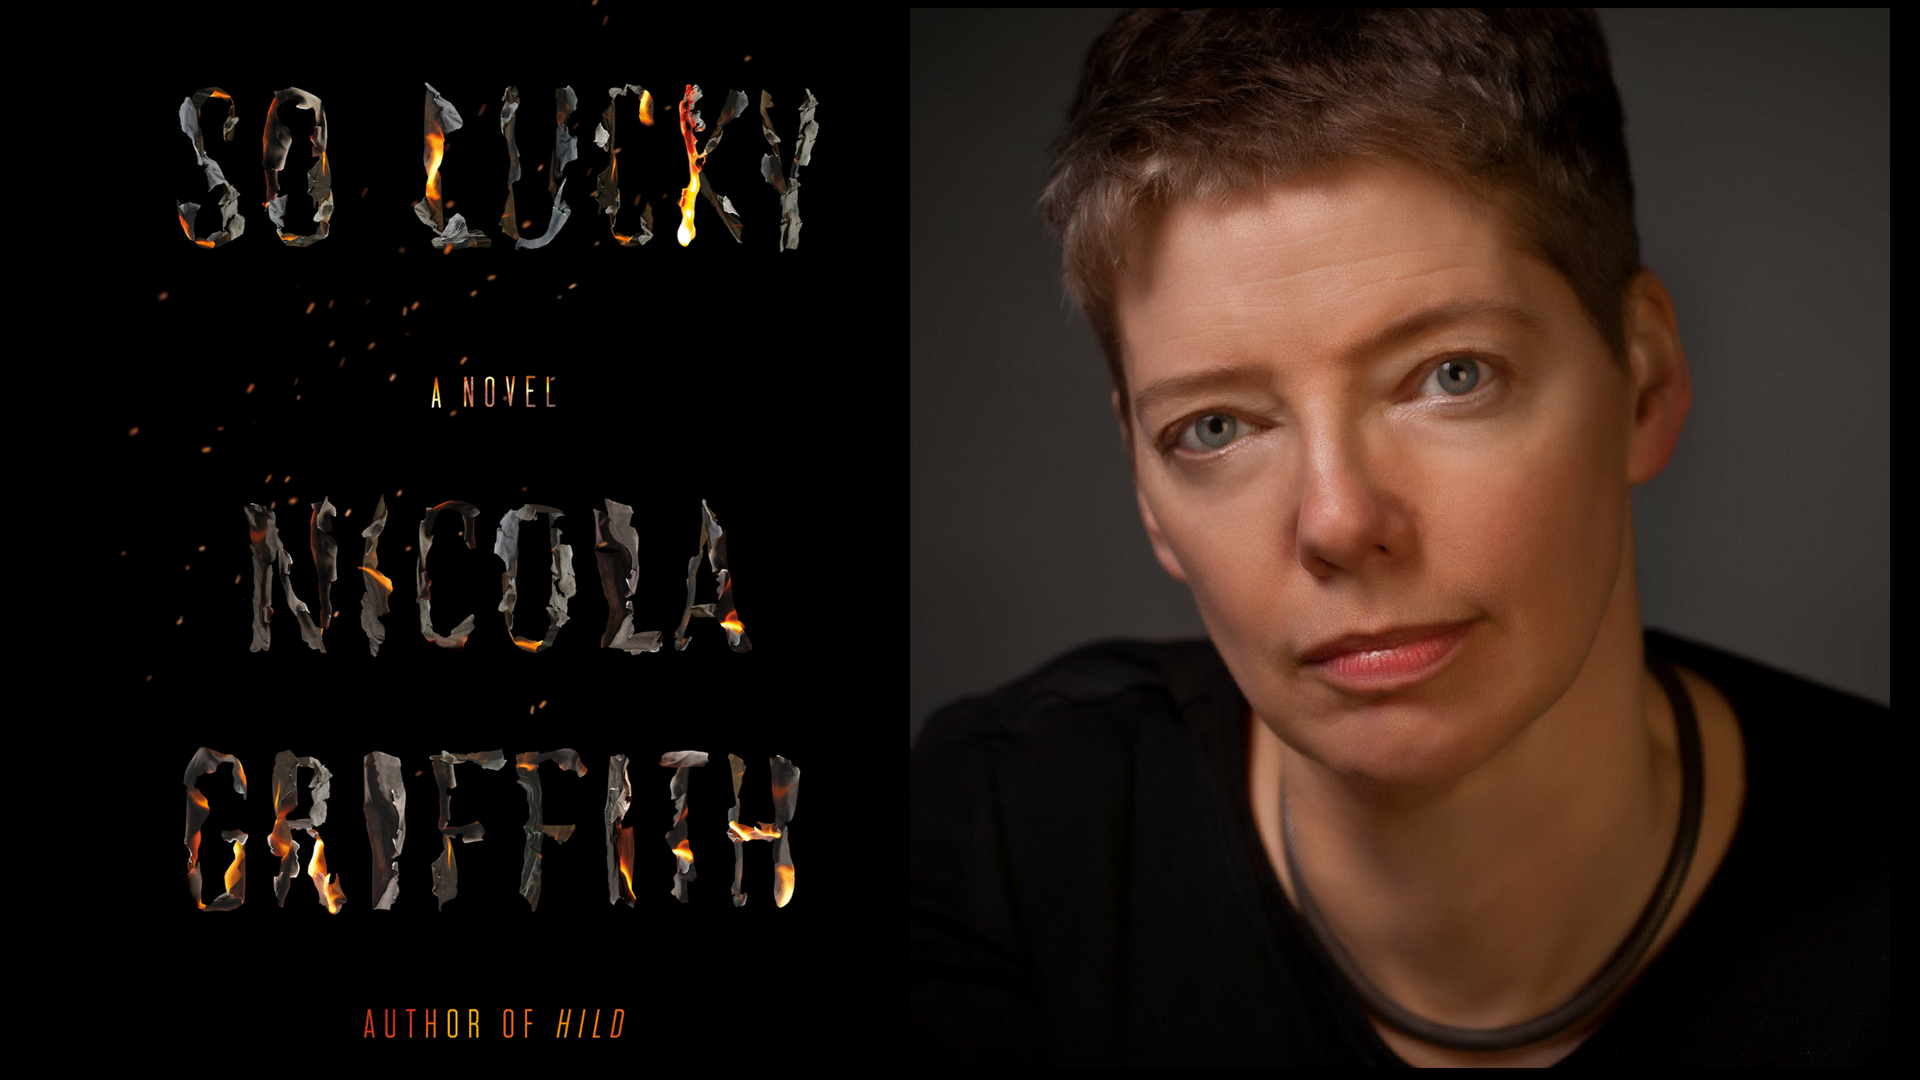 Author Nicola Griffith